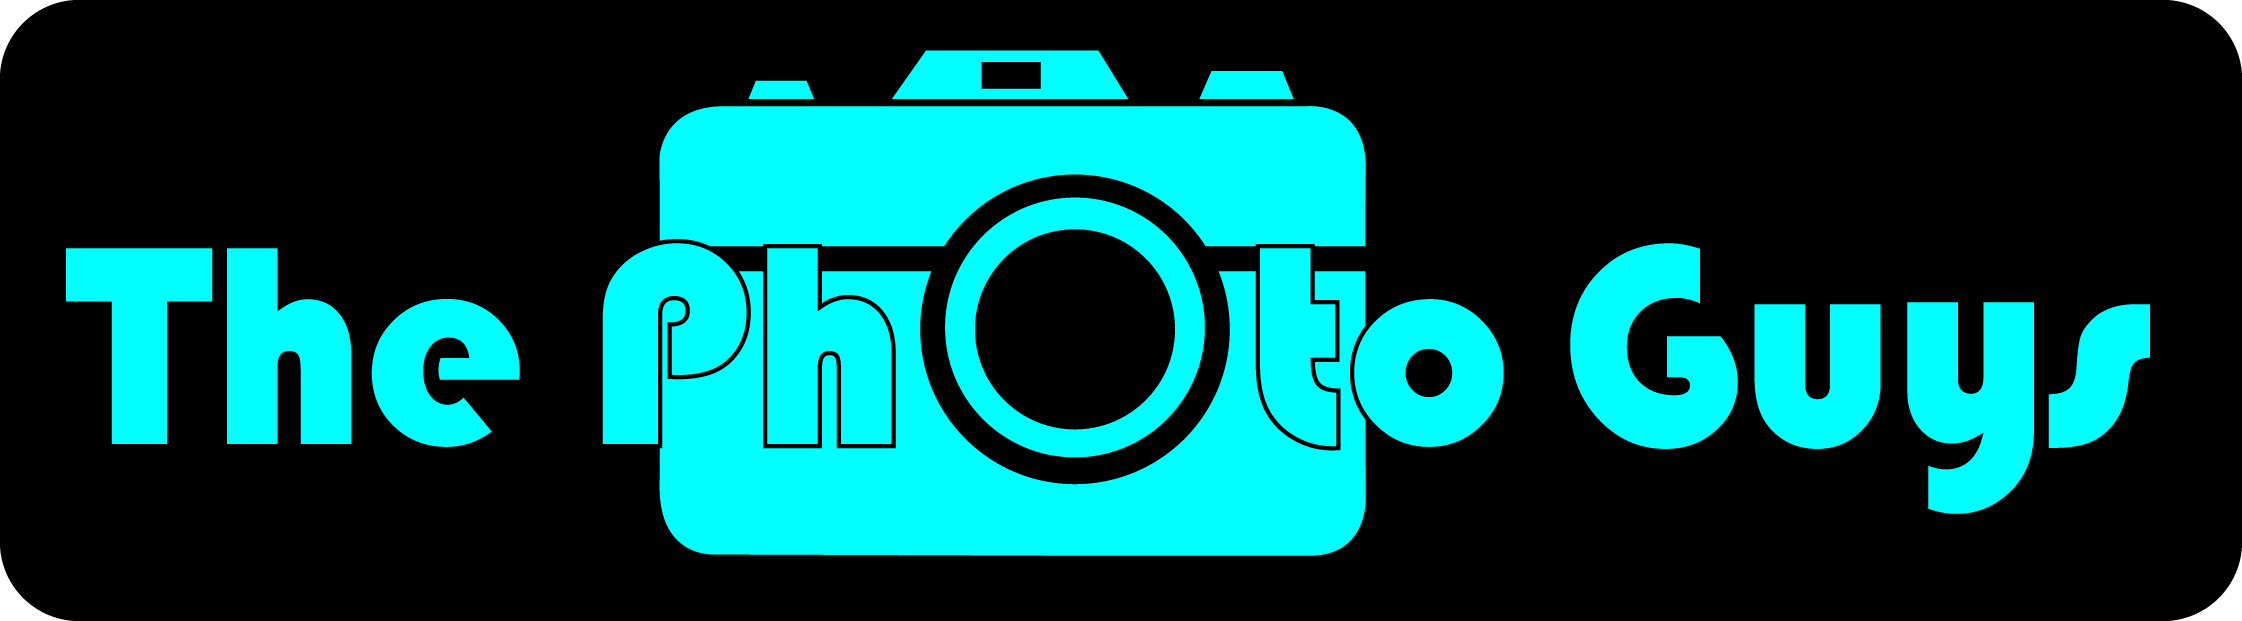 Photoguylogo.jpg